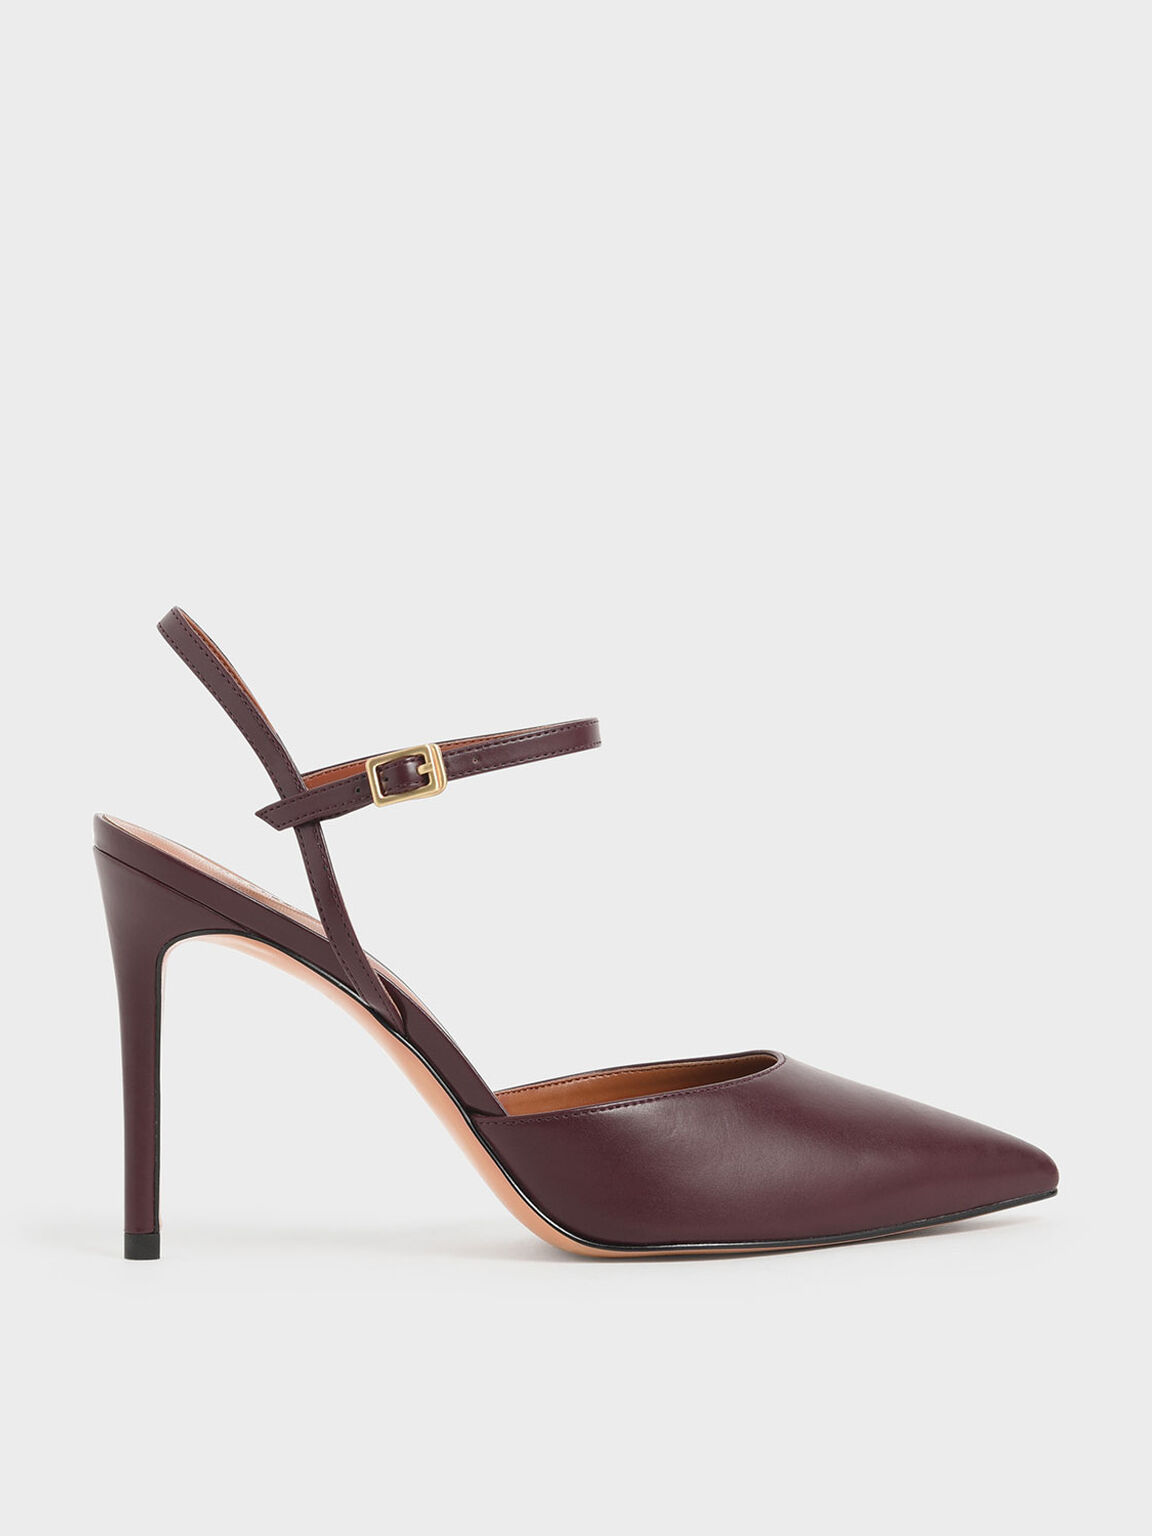 Pointed Toe Ankle Strap Pumps, Prune, hi-res